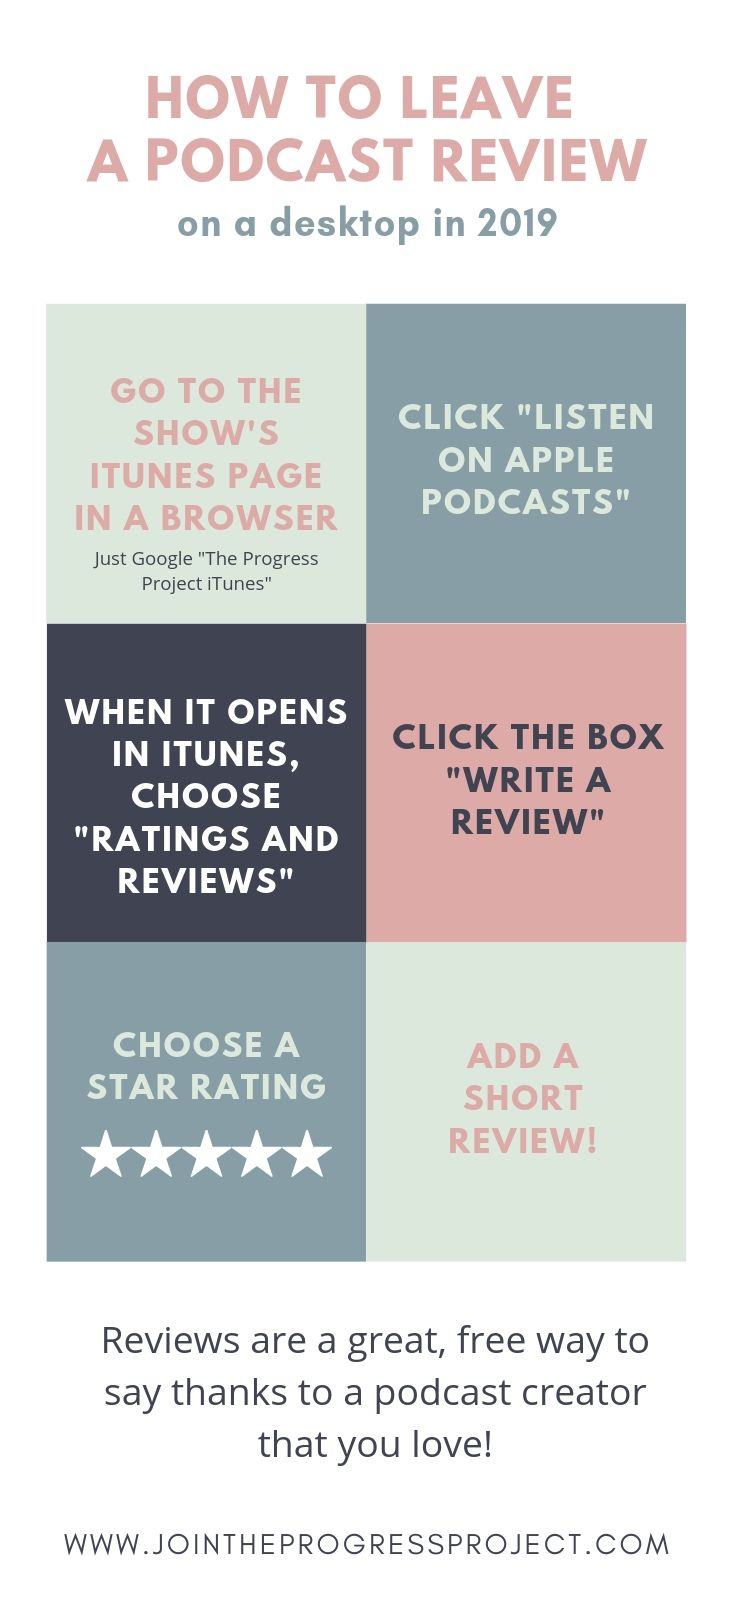 Here's how you can easily leave an itunes review on your desktop in 2019. Reviews are a great, free way to say thanks to a podcast that you love!